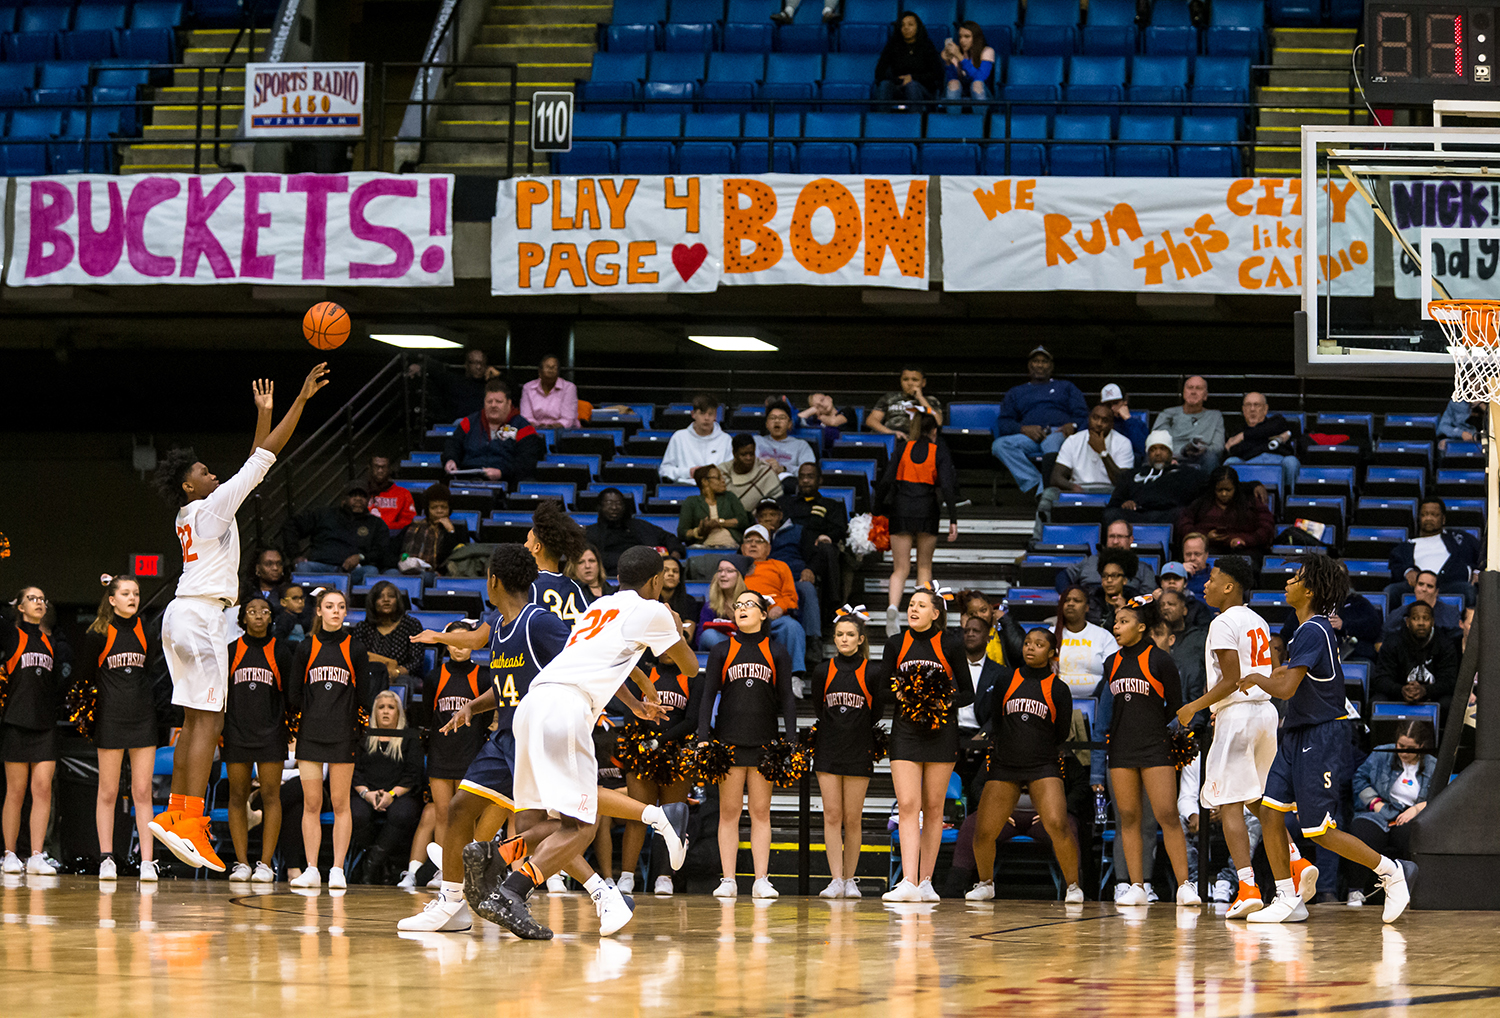 Lanphier's KJ Debrick (32) shoots a 3-pointer against Southeast in the third quarter on opening night of the Boys City Tournament at the Bank of Springfield Center, Wednesday, Jan. 16, 2019, in Springfield, Ill. [Justin L. Fowler/The State Journal-Register]